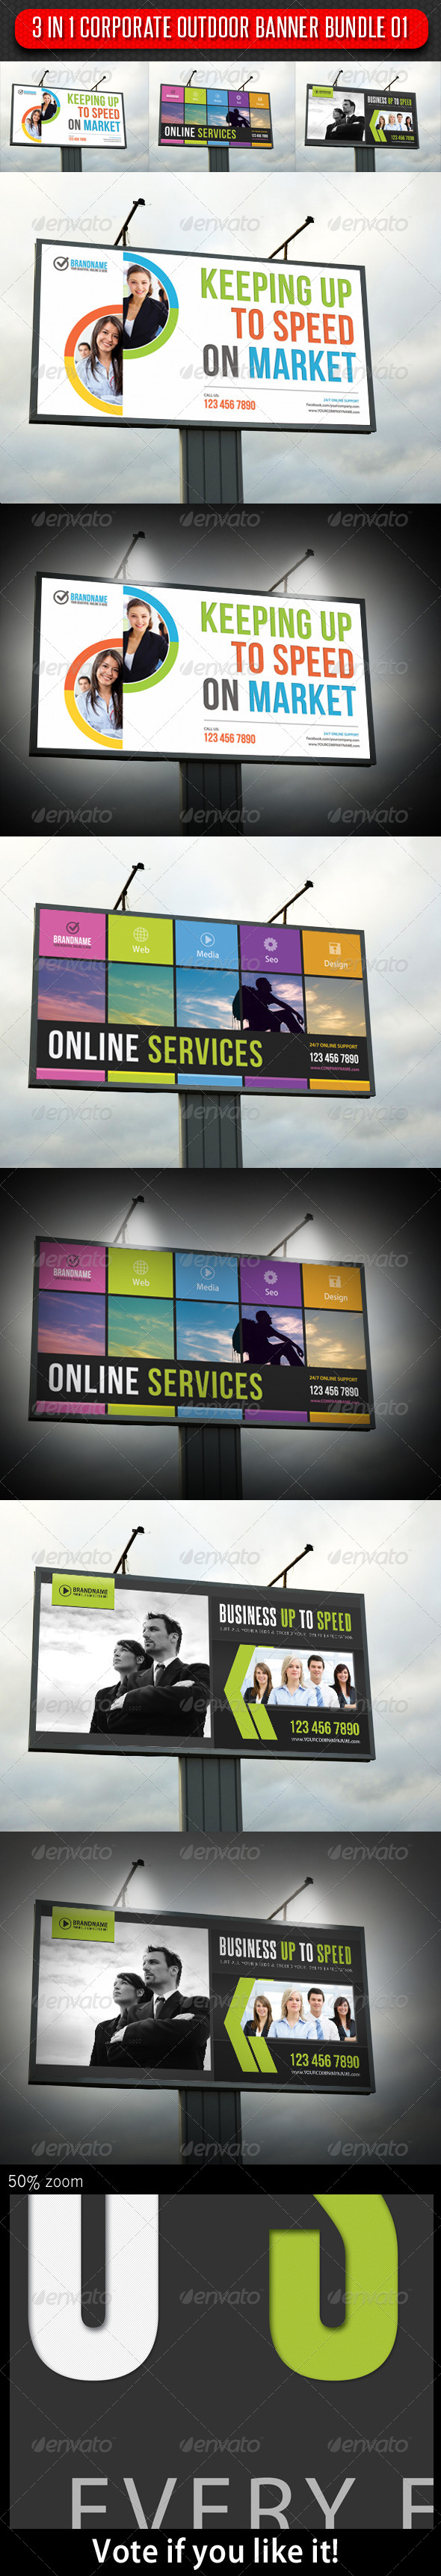 3 in 1 Corporate Banner Bundle 01 - Signage Print Templates